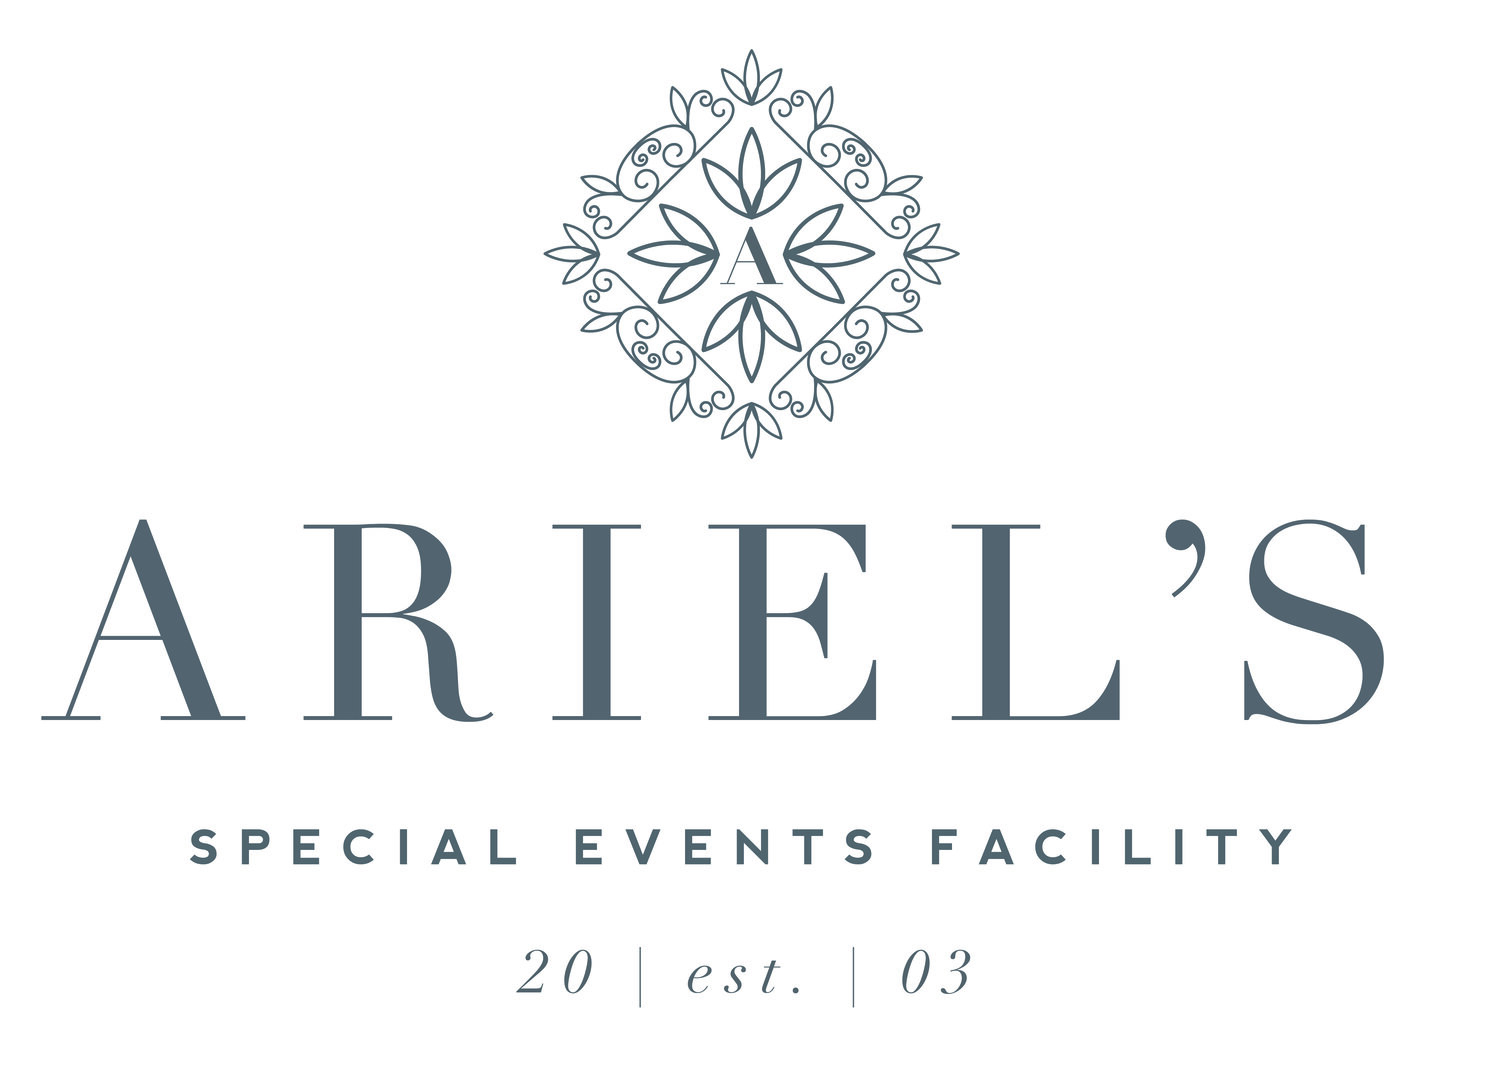 Ariel's Special Events Facility